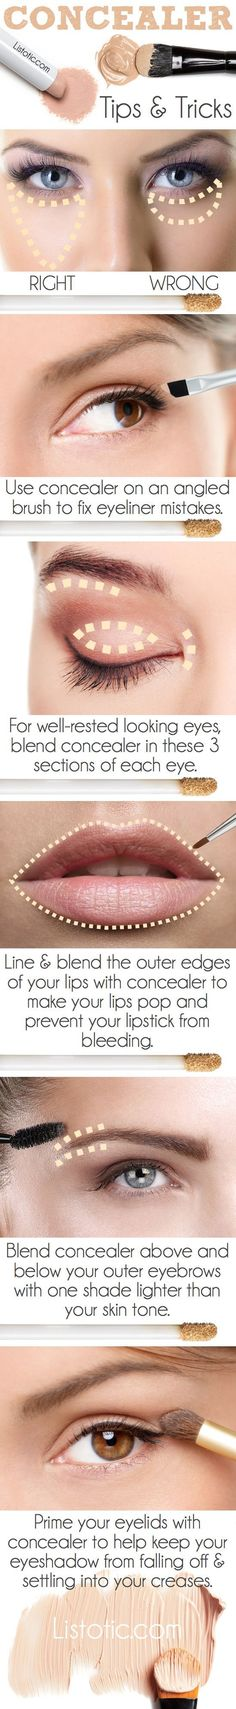 20 Beauty Mistakes You Didn't Know You Were Making Simple Every Day Look Tutorial for Blue Eyes